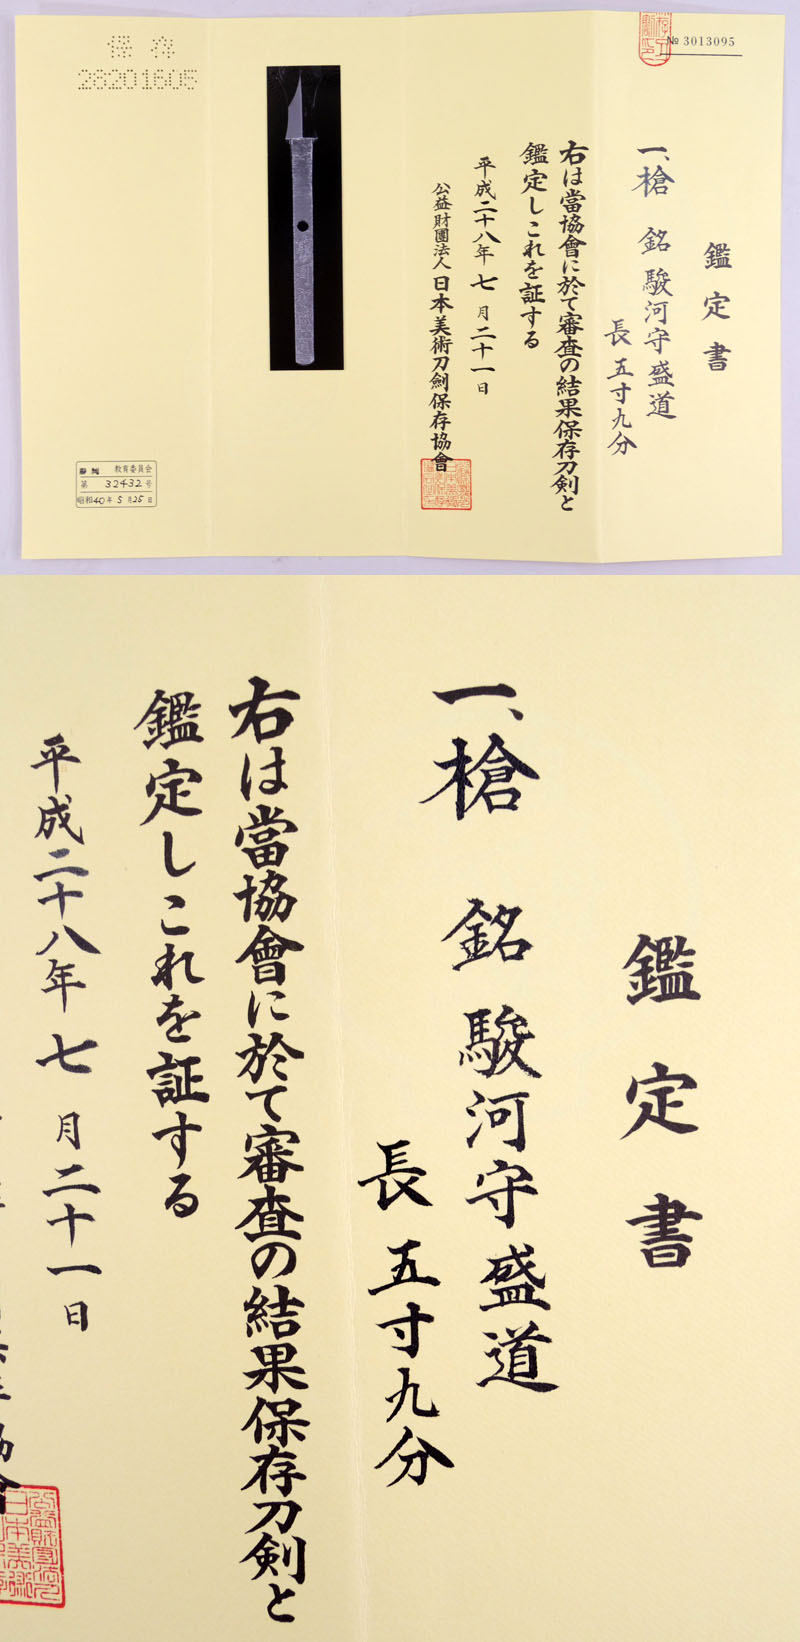 駿河守盛道 Picture of Certificate